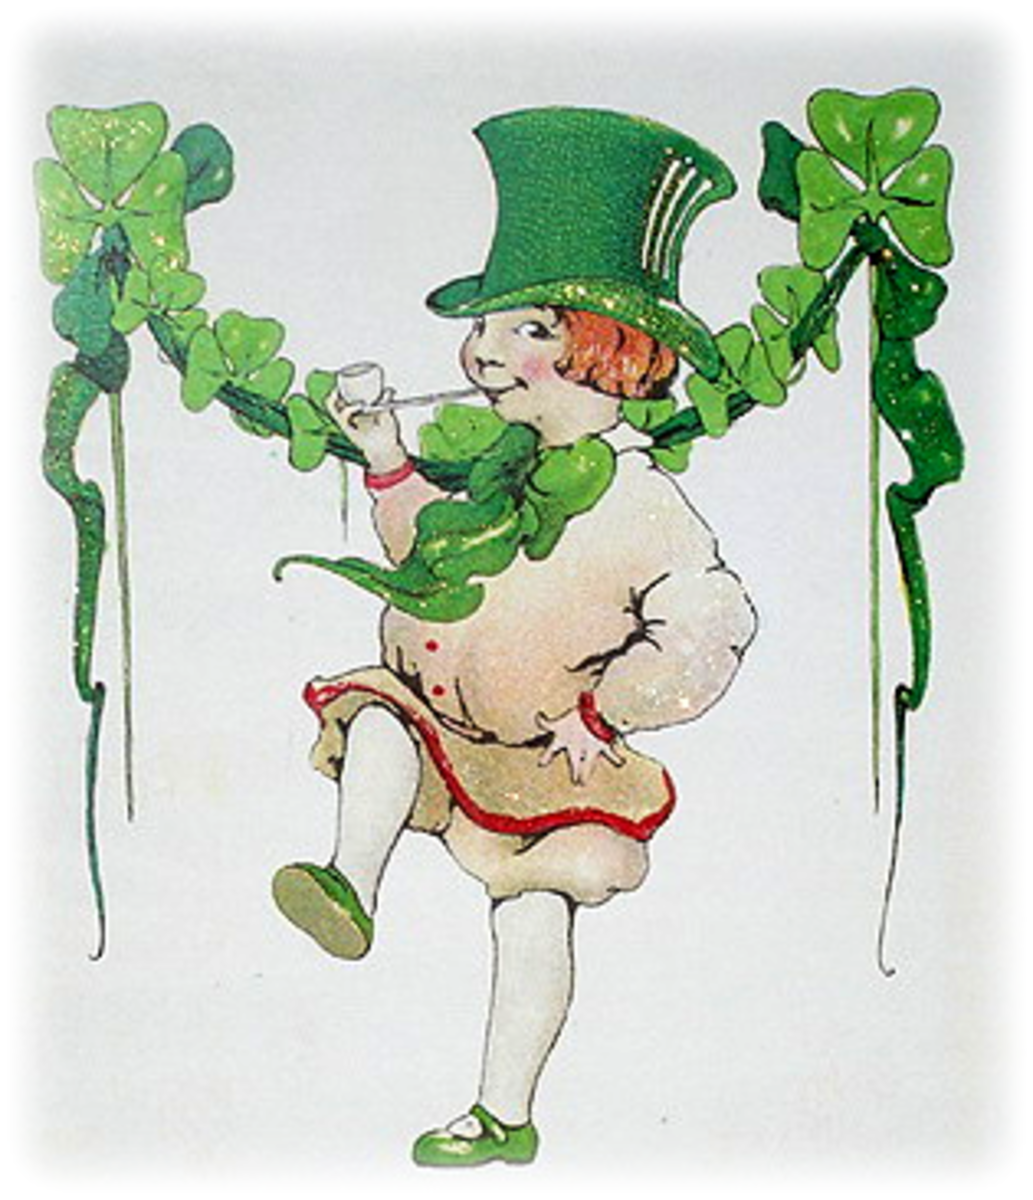 Little vintage boy in green top hat dancing, shamrock garland